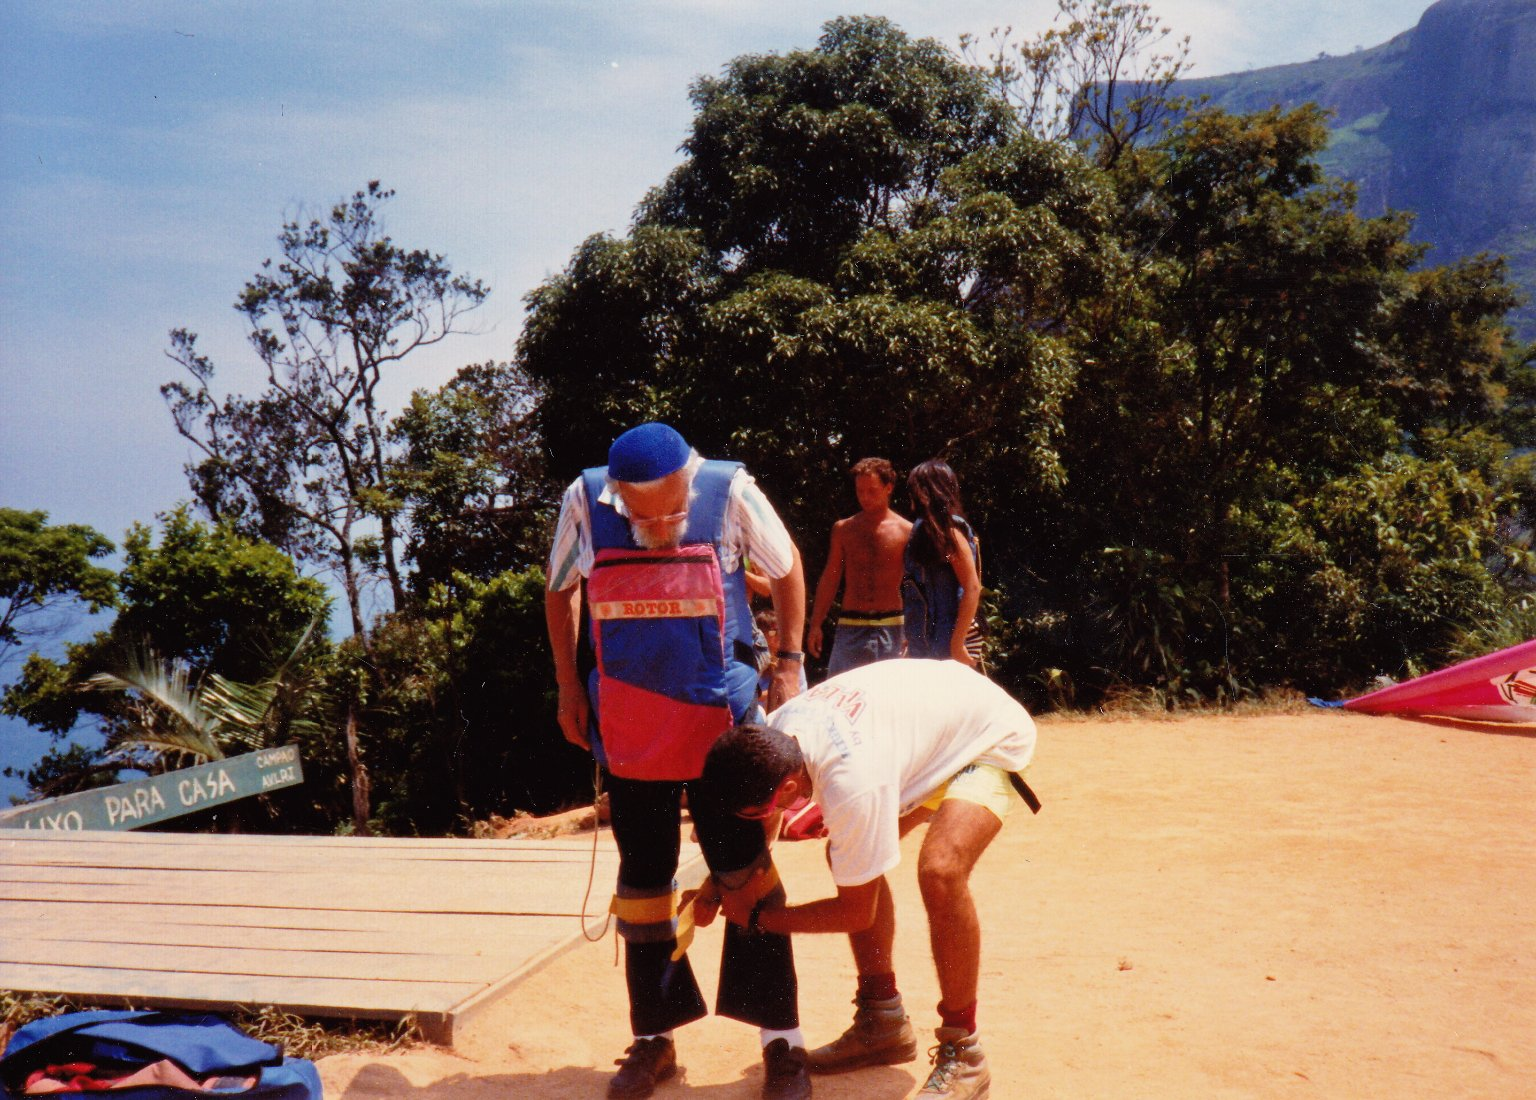 Rabbi Zalman Schachter-Shalomi getting harnassed for a hang-glider flight by the pilot, ca. 1990.